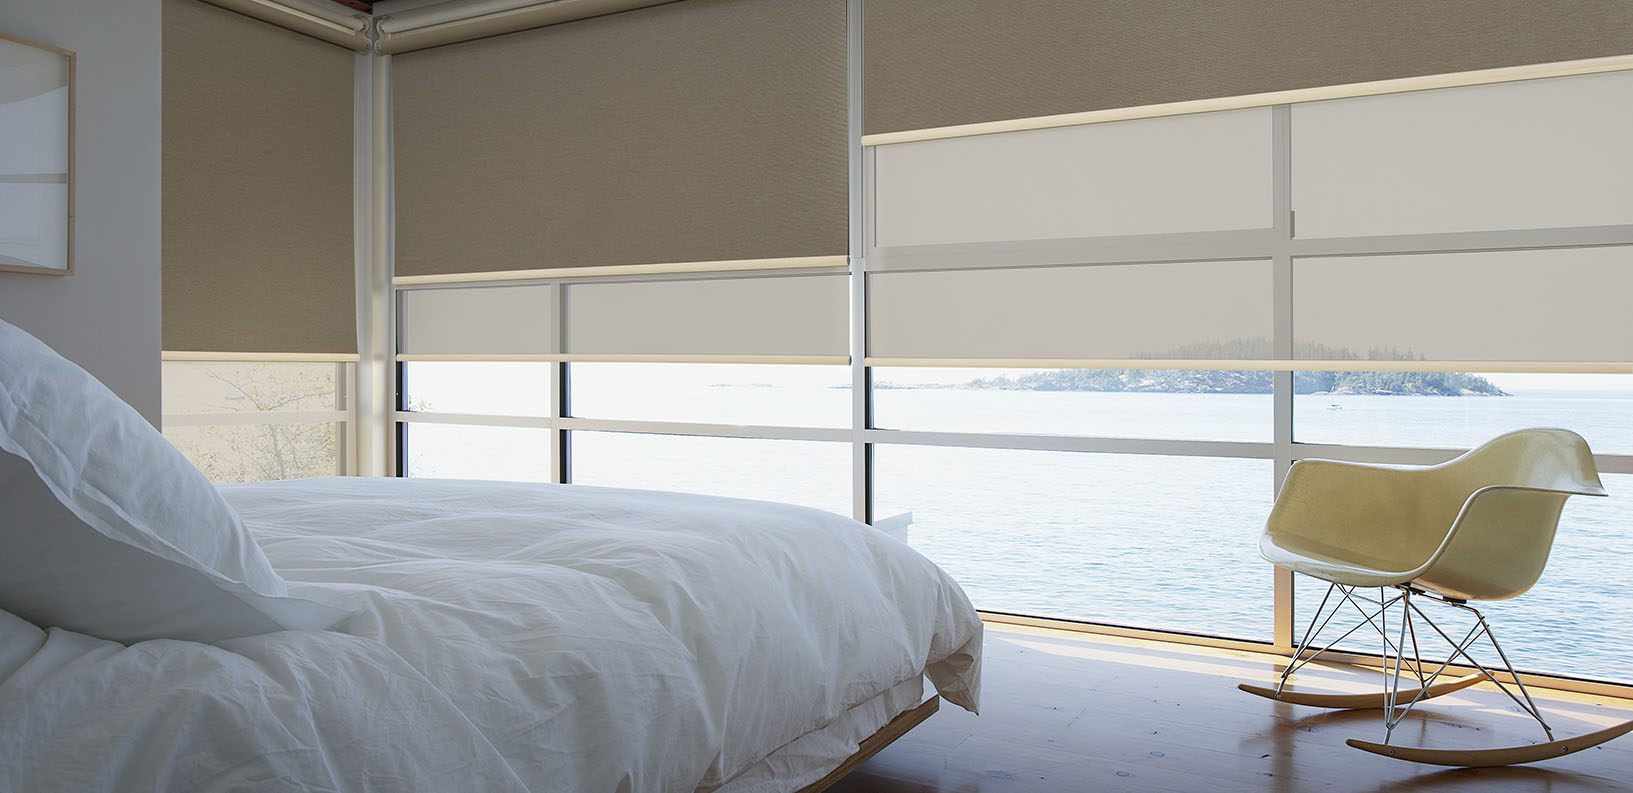 Bedroom With Waterfront Window